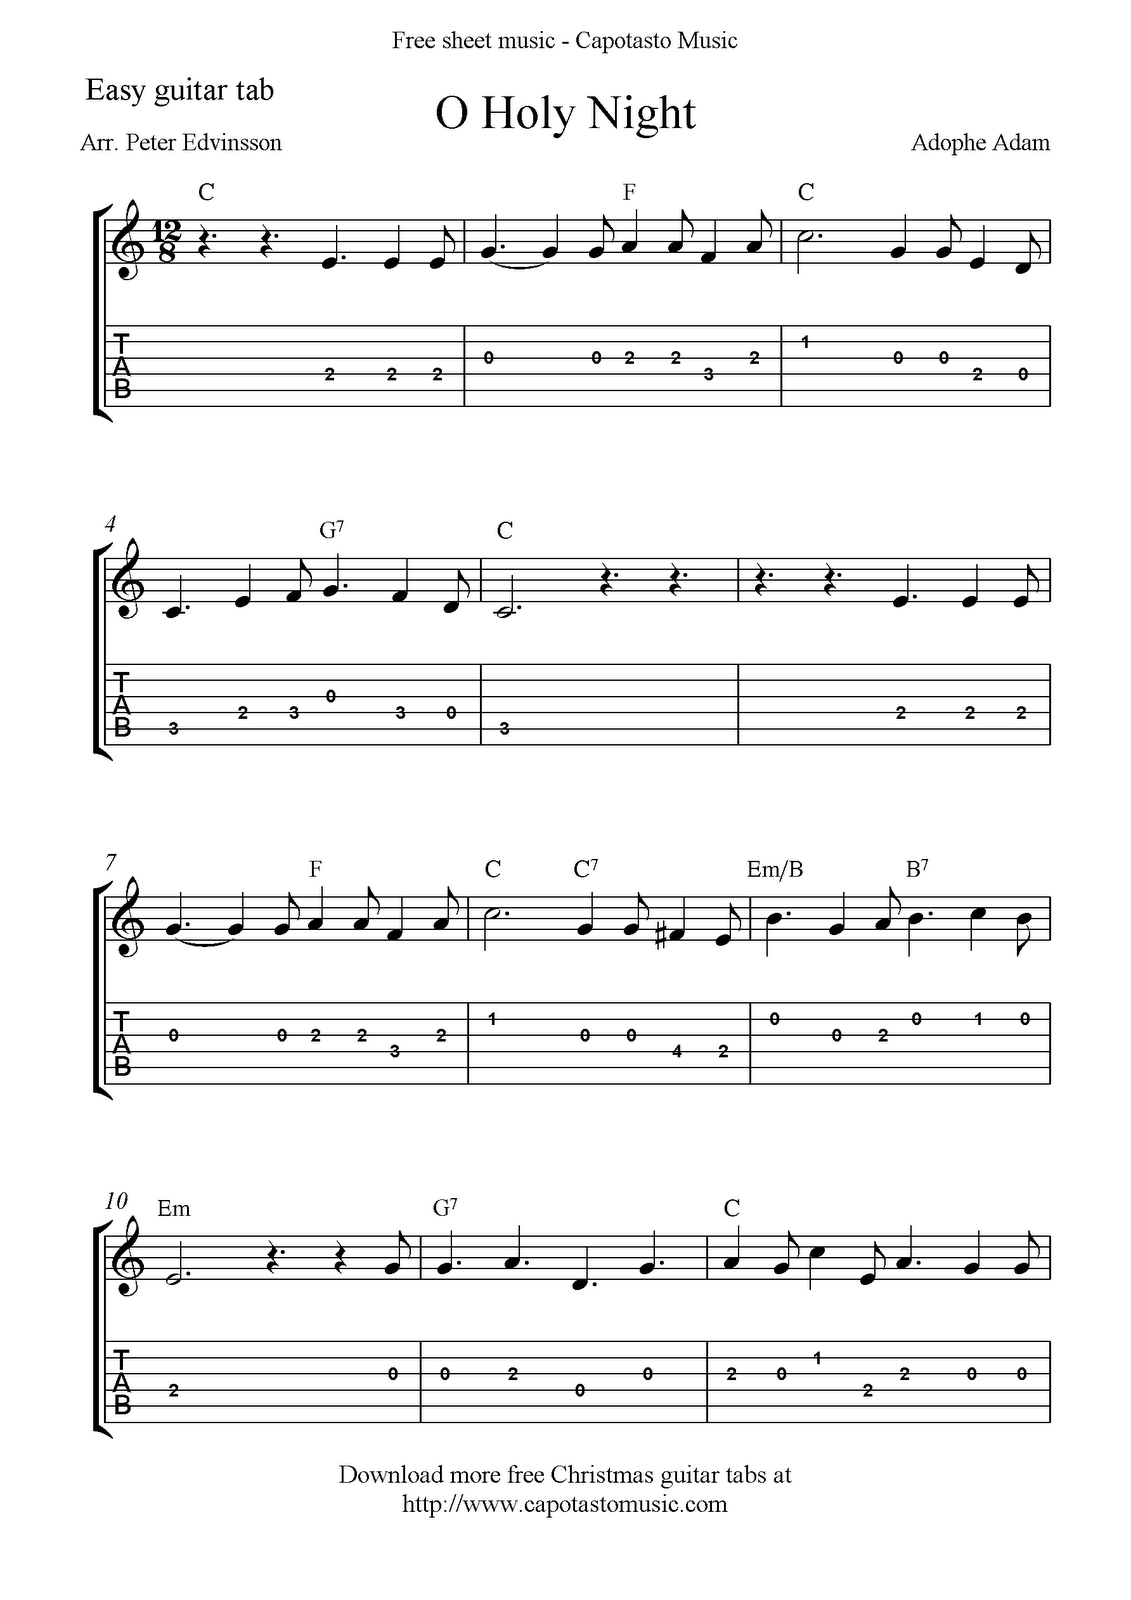 Free Printable Sheet Music O Holy Night Free Easy Christmas Guitar Sheet Music And Guitar Tabs Guitar Tabs Guitar Tabs Songs Guitar Tabs For Beginners